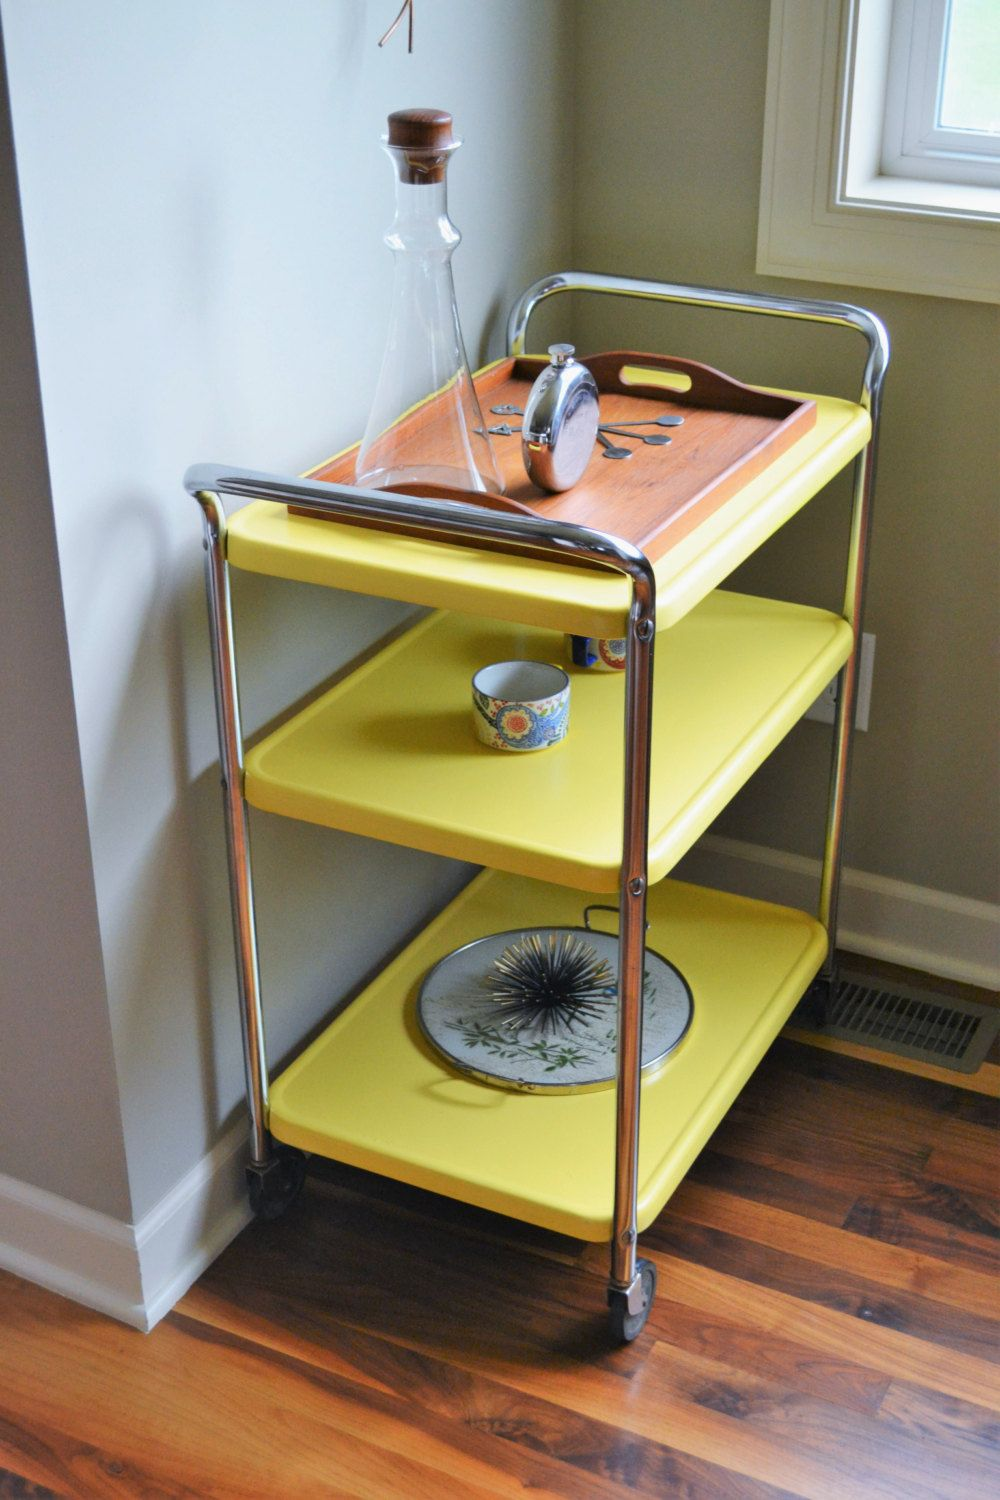 Retro Metal Kitchen Table Vintage Yellow Costco Style Rolling Cart Mid Century Modern Bar